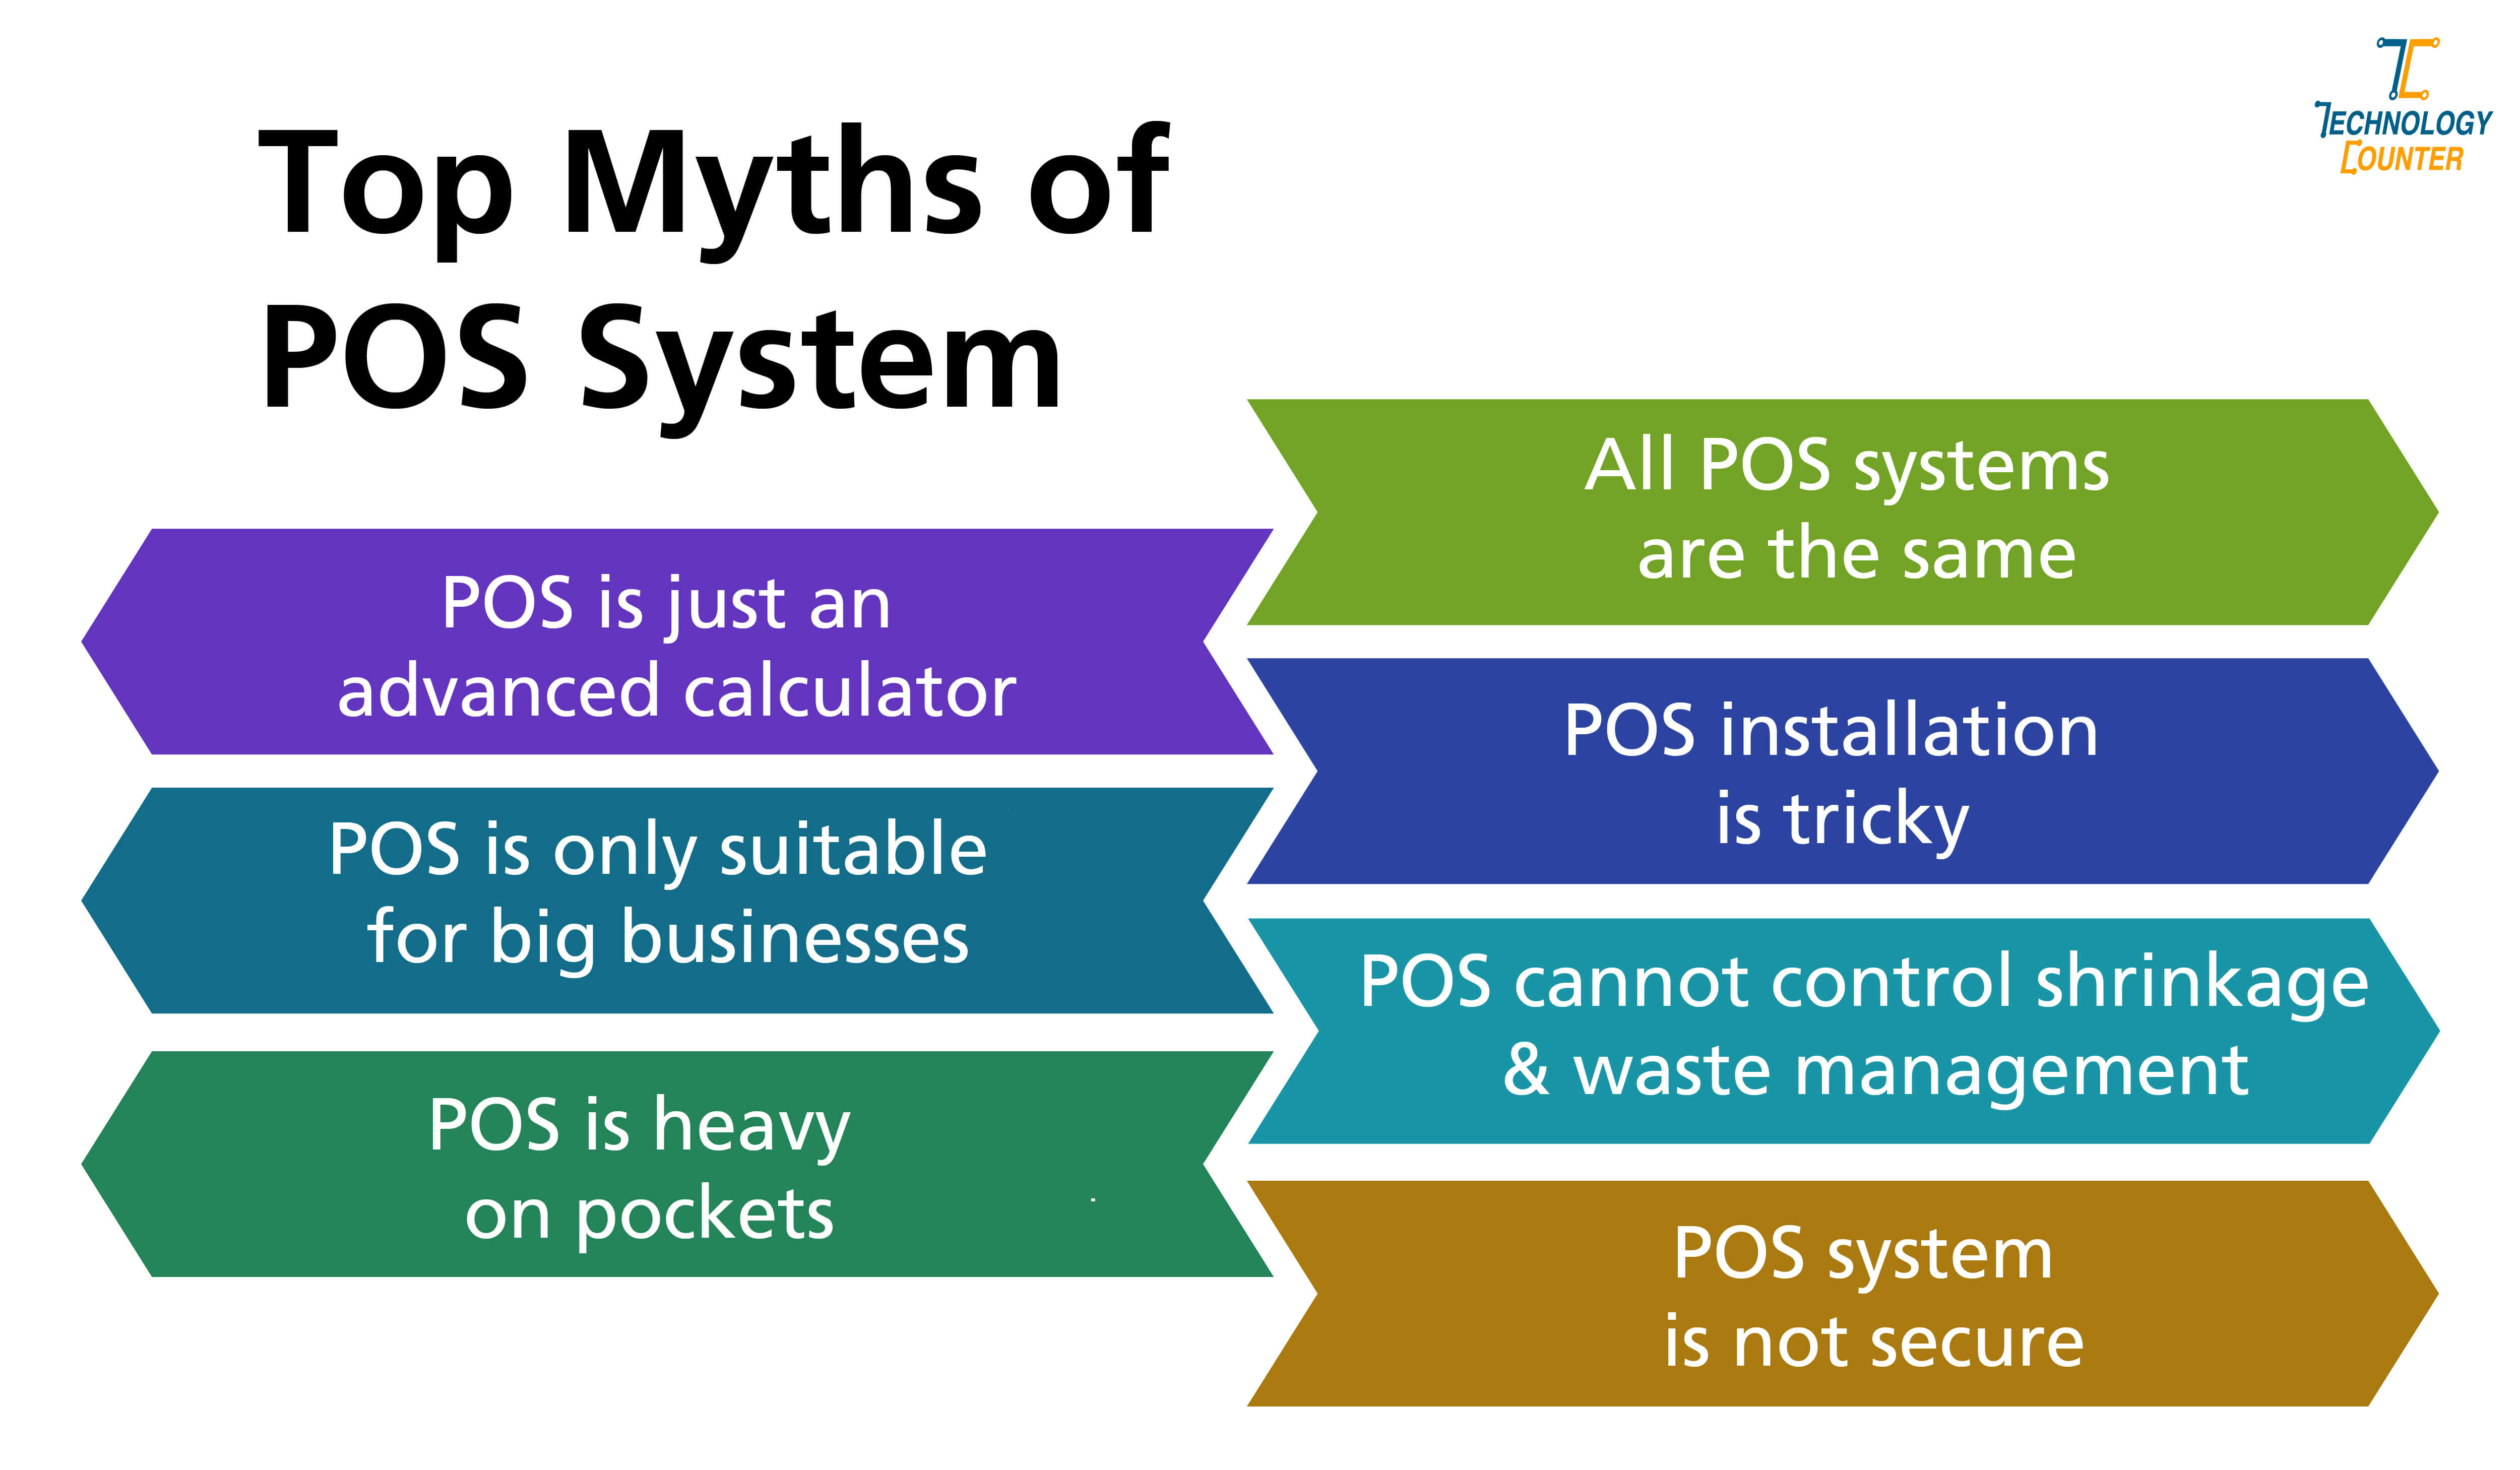 Top Myths of POS System